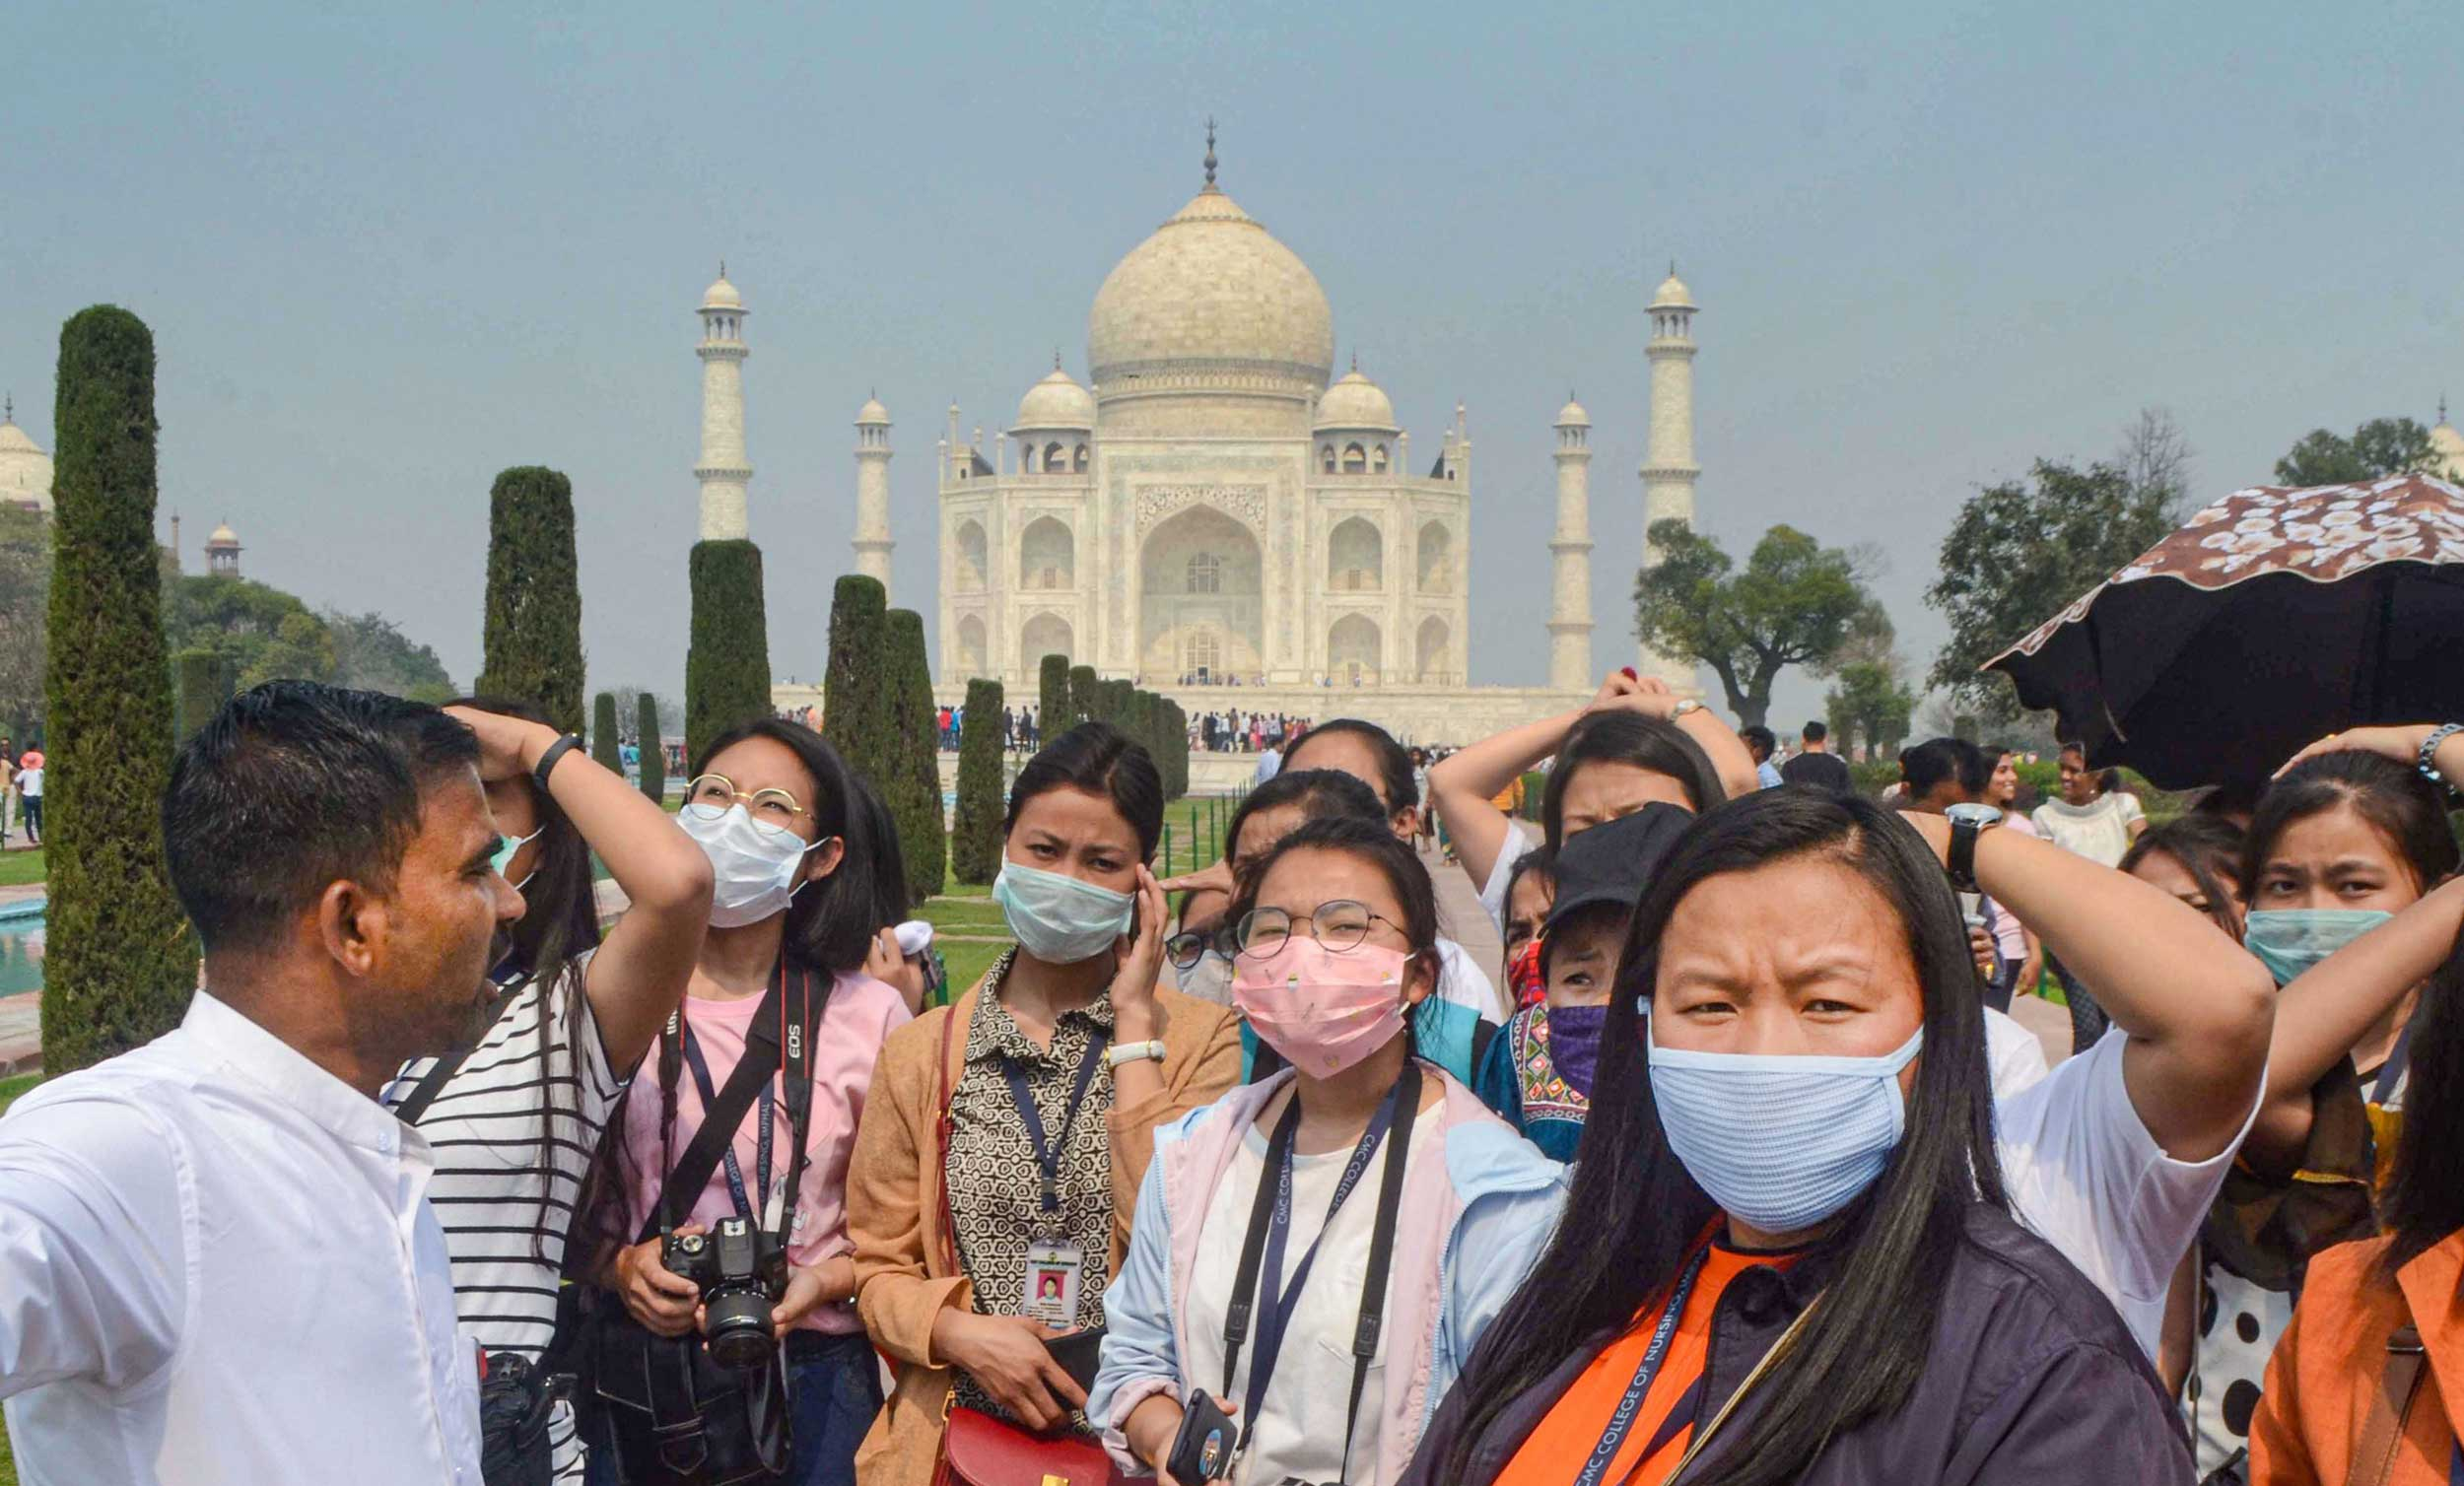 Tourists at the Taj Mahal in Agra on Tuesday,